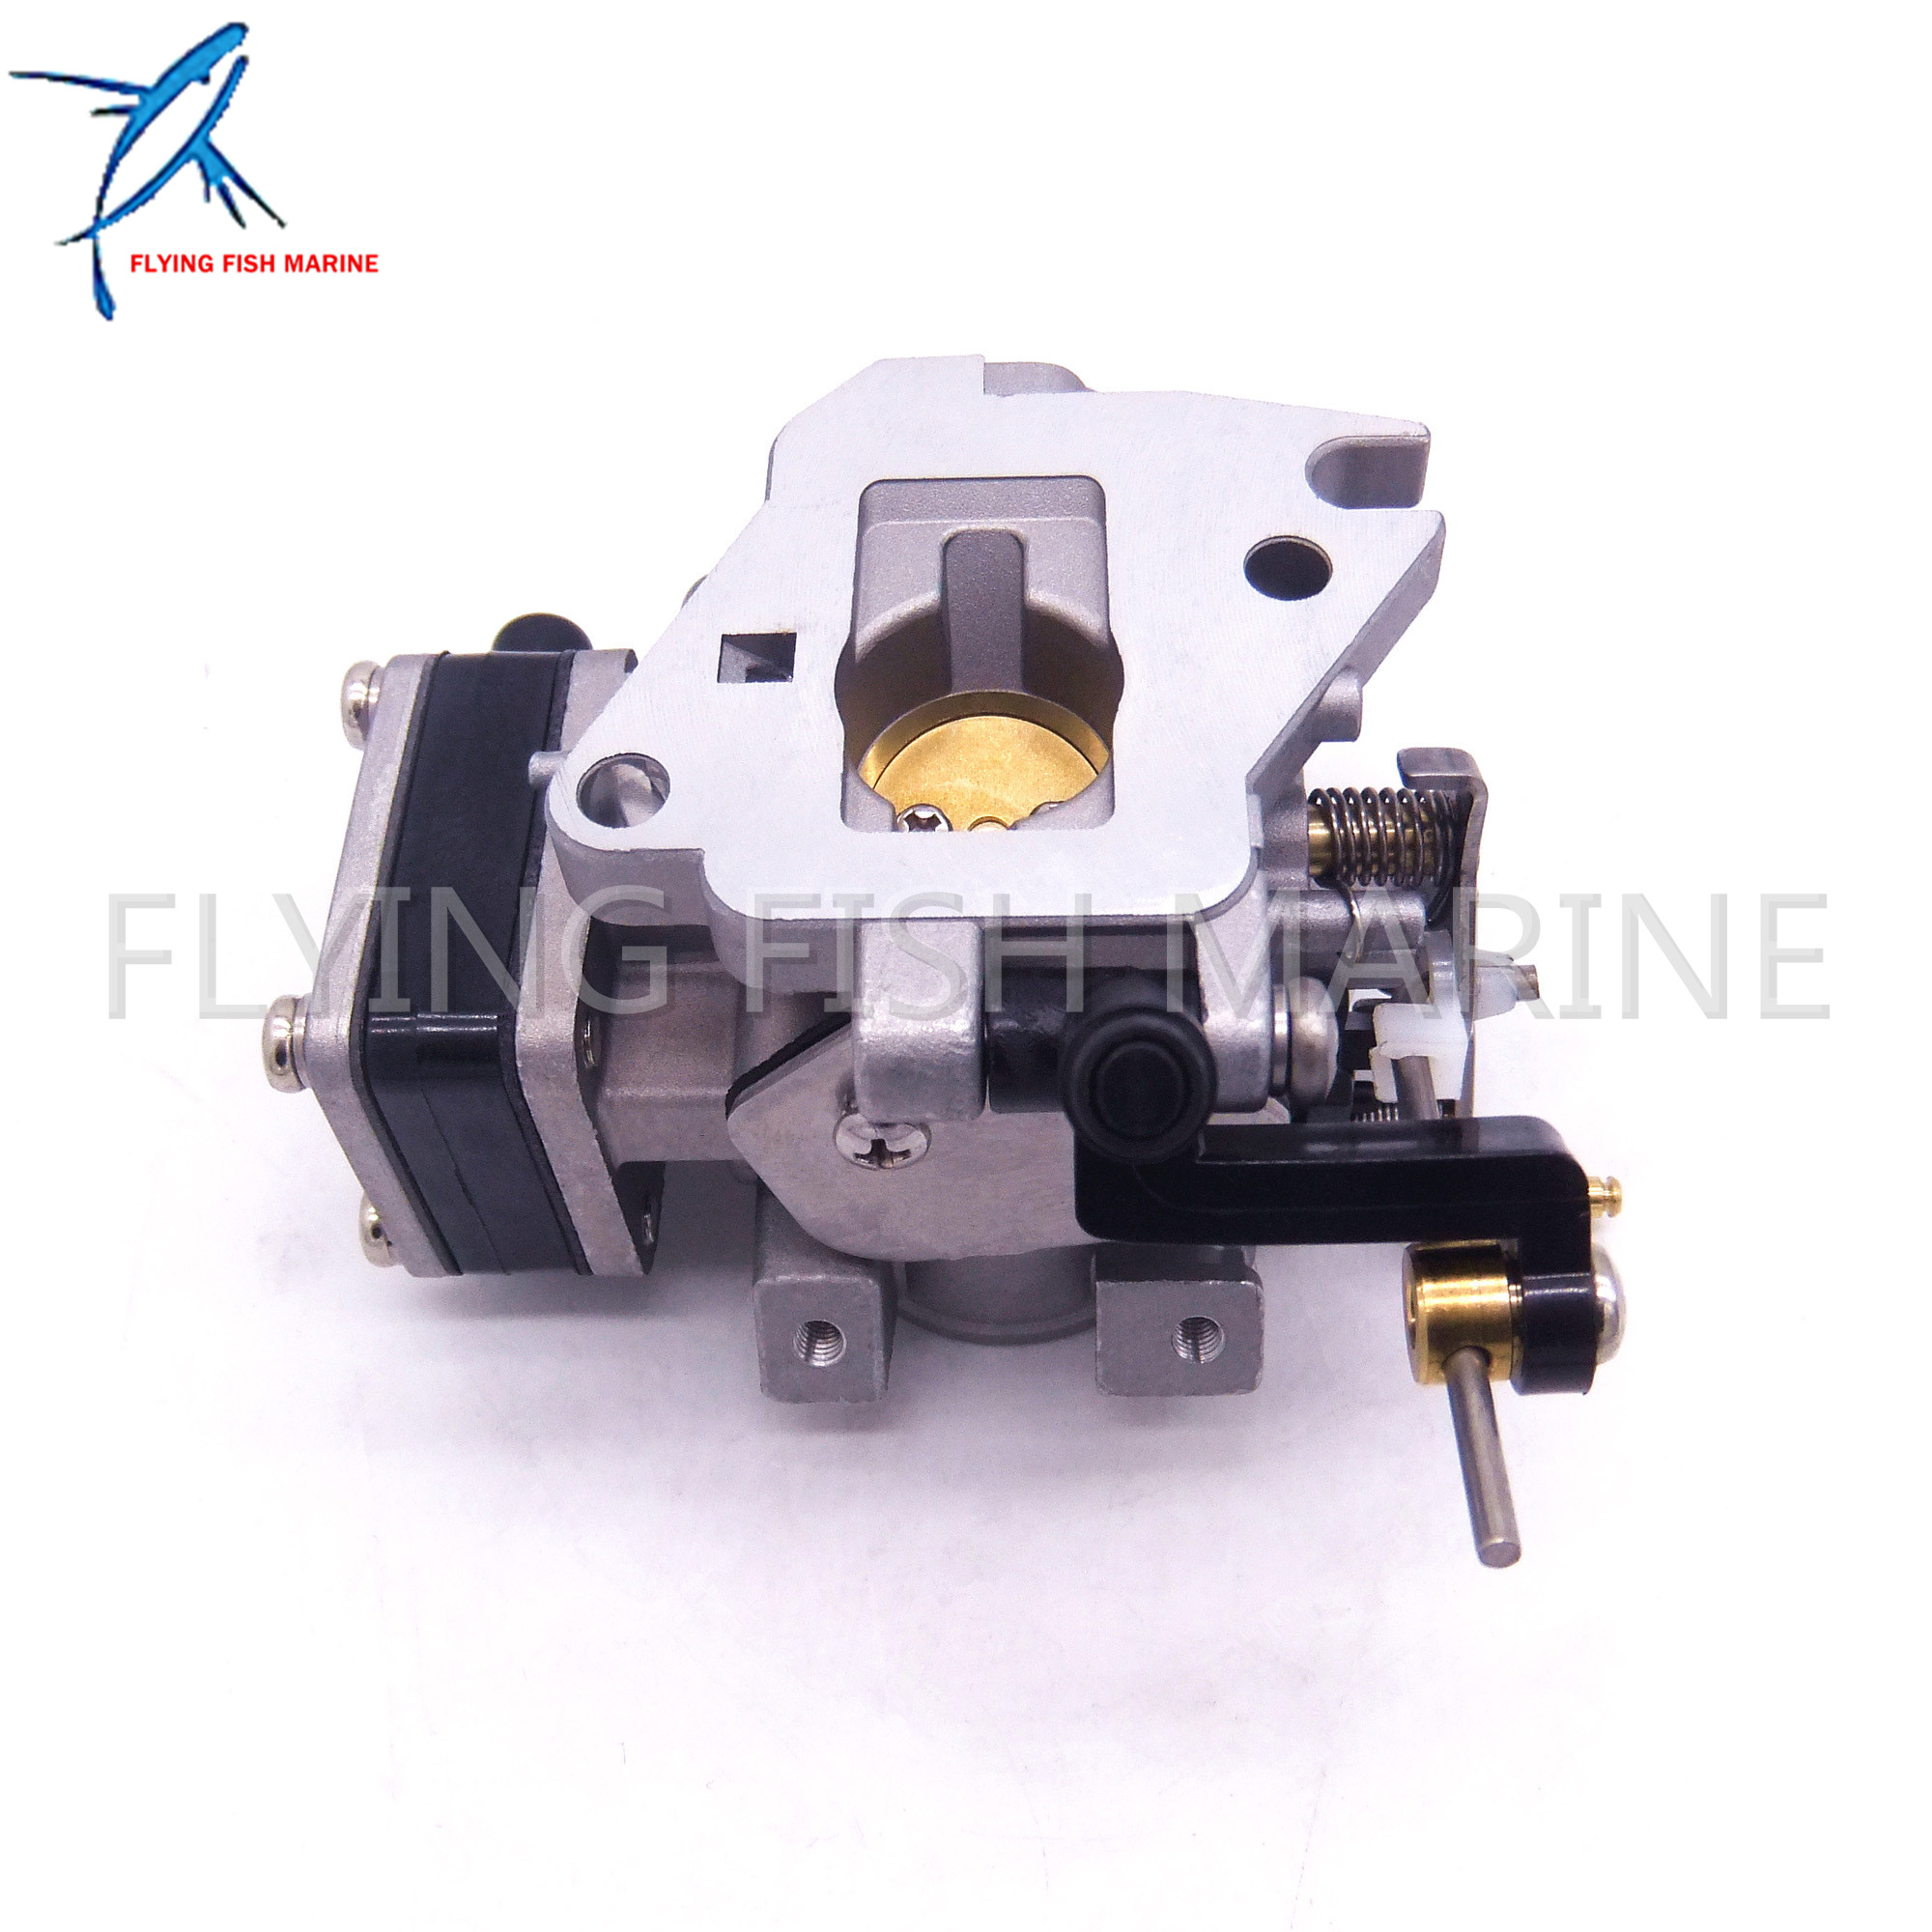 Outboard Engines Carburetor Carb assy for Yamaha 6E8-14301-05 6E7-14301 684-14301 2-stroke 9.9hp 15hp Boat MotorOutboard Engines Carburetor Carb assy for Yamaha 6E8-14301-05 6E7-14301 684-14301 2-stroke 9.9hp 15hp Boat Motor